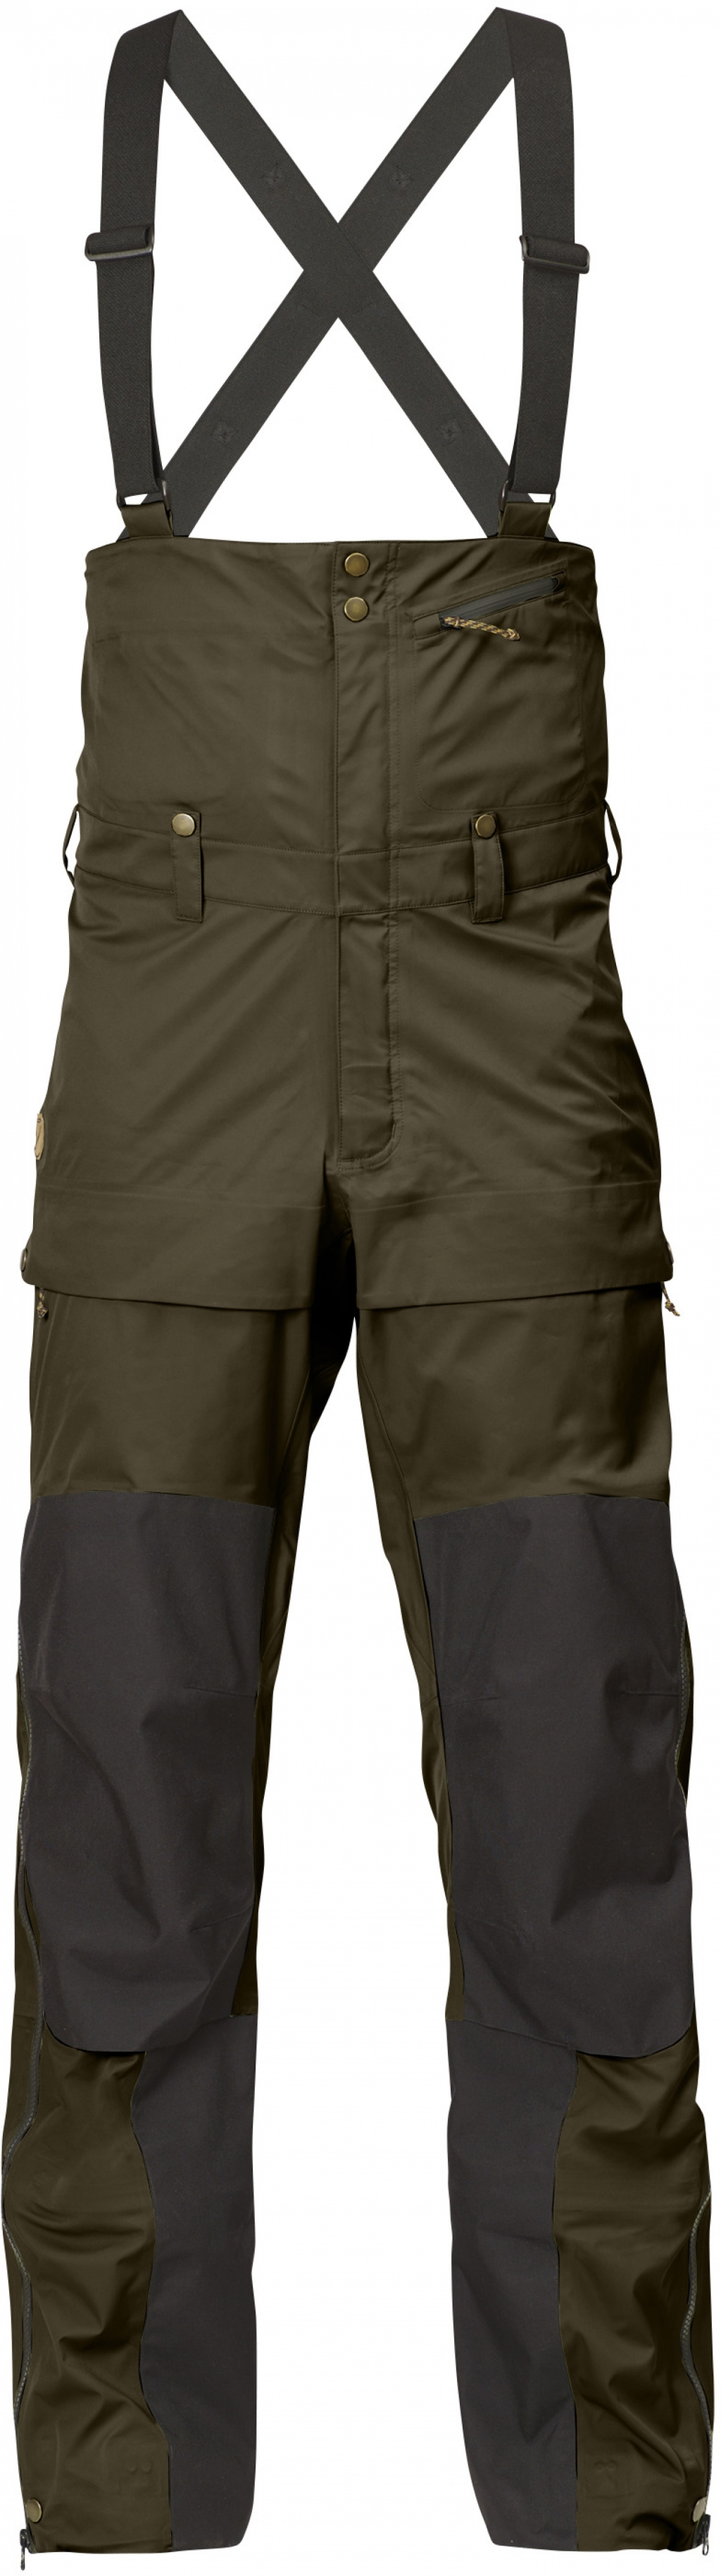 FjallRaven Keb Eco-Shell Bib Trousers Dark Olive-30